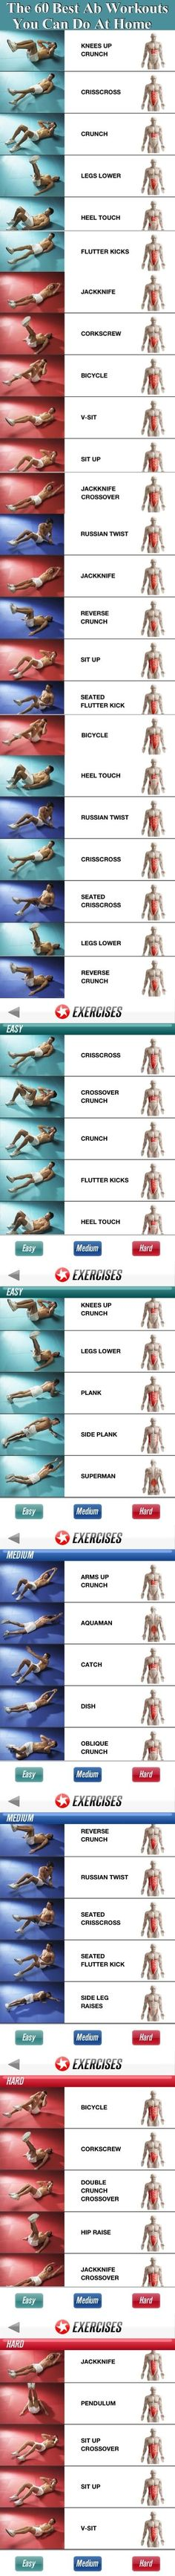 The 60 Best Ab Workouts You Can Do From Home abs fitness exercise home exercise…